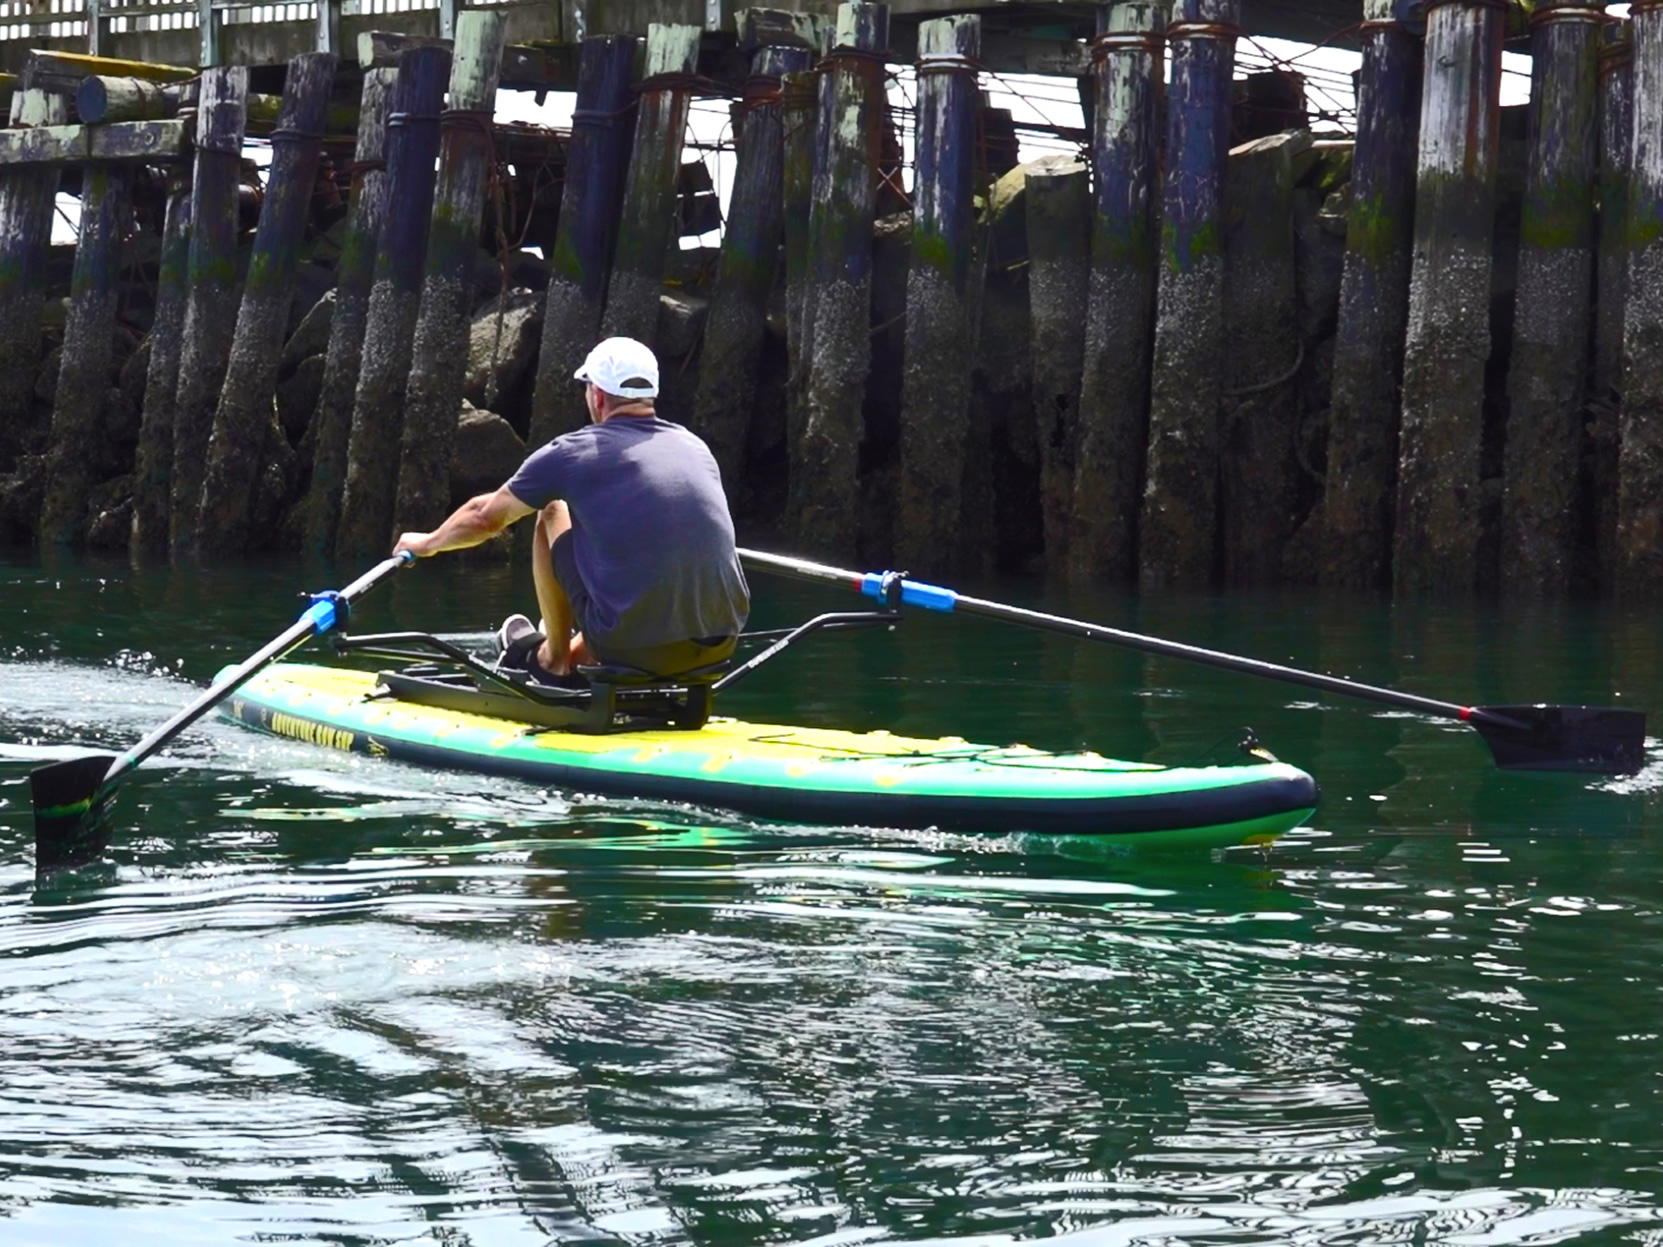 oar-board-stand-up-paddle-board-rower-whitehall-rowing-and-sail-Peter-ADV-16-Port-Townsend